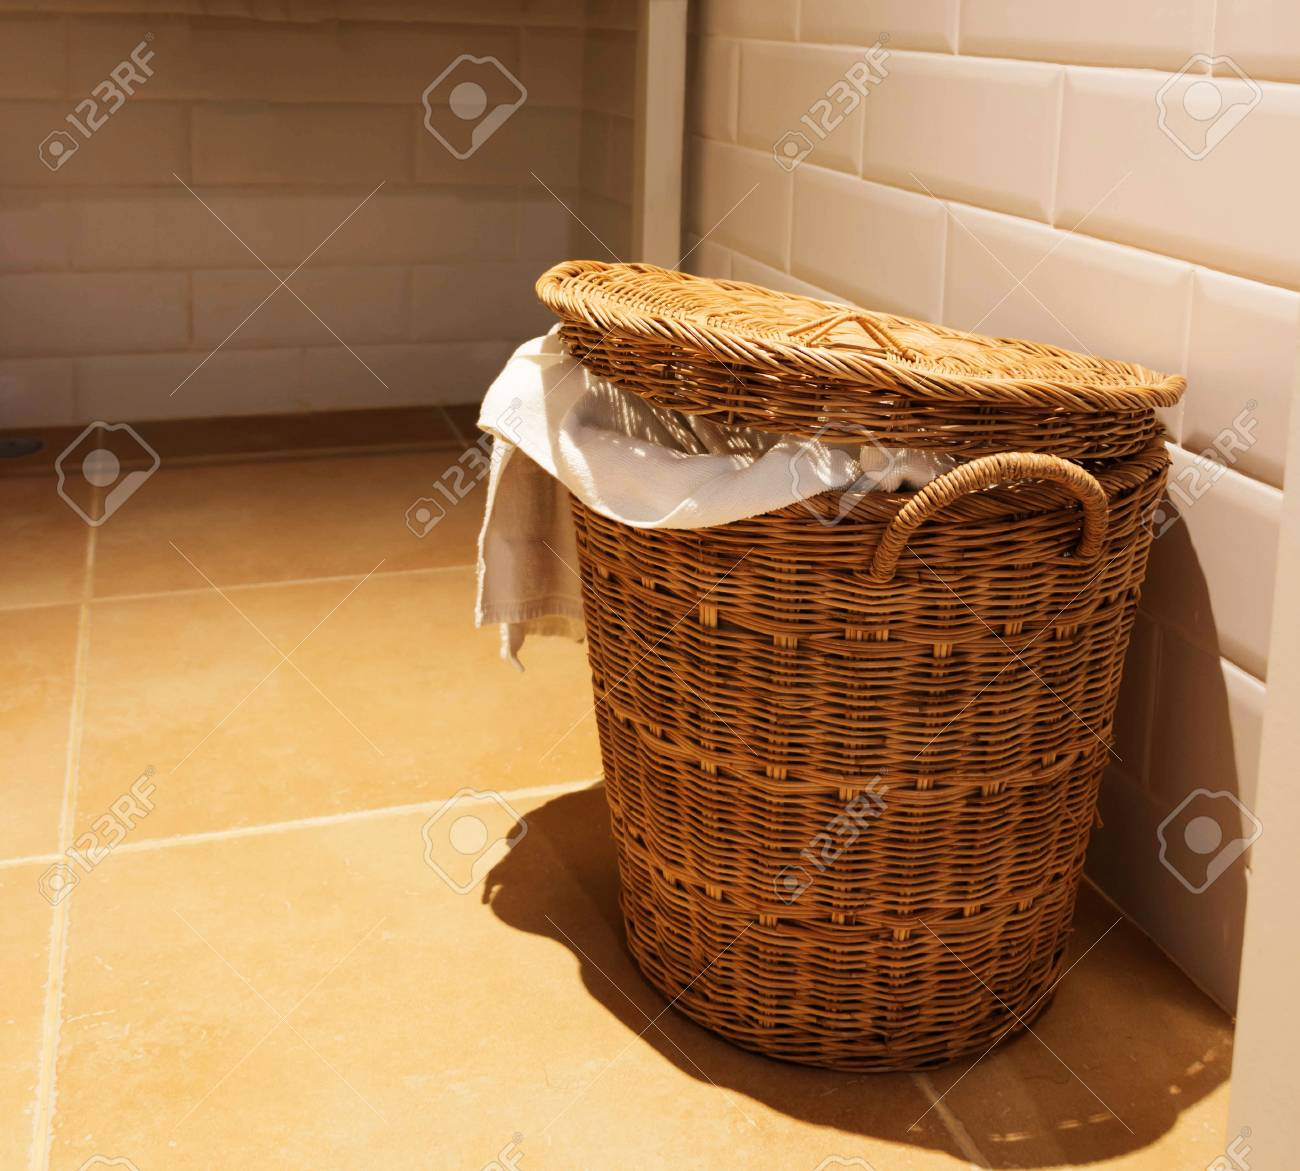 Used White Towel In Wooden Basket In Hotel Bathroom Stock Photo Picture And Royalty Free Image Image 99191677